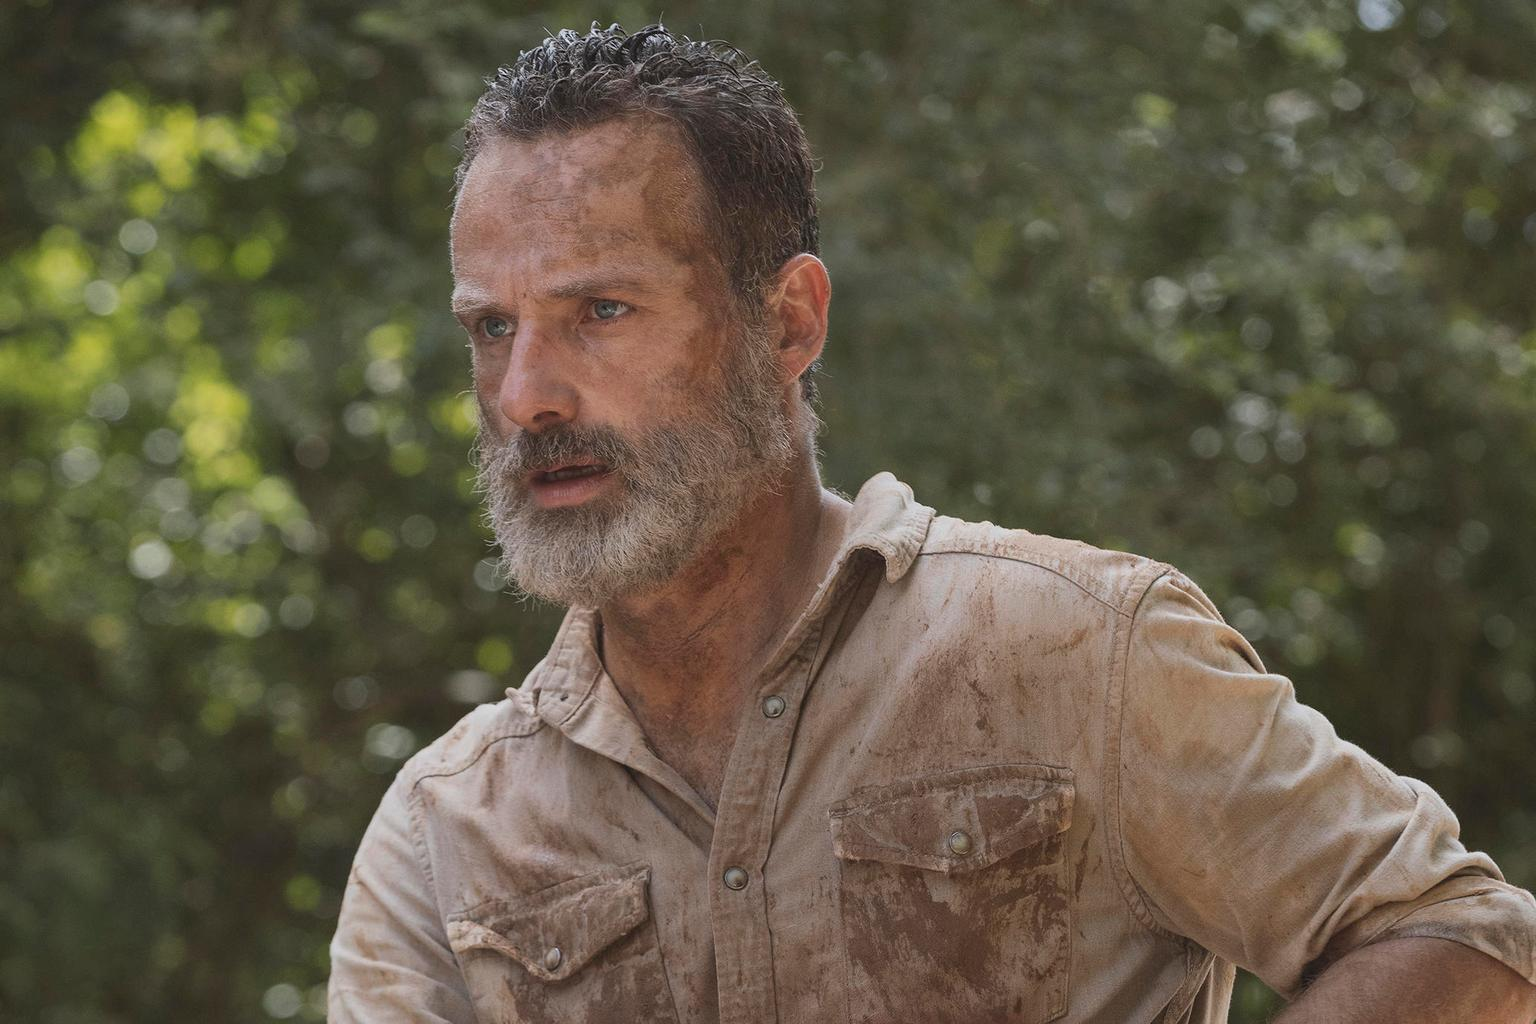 Rick Grimes Returns in the First Teaser for The Walking Dead Film